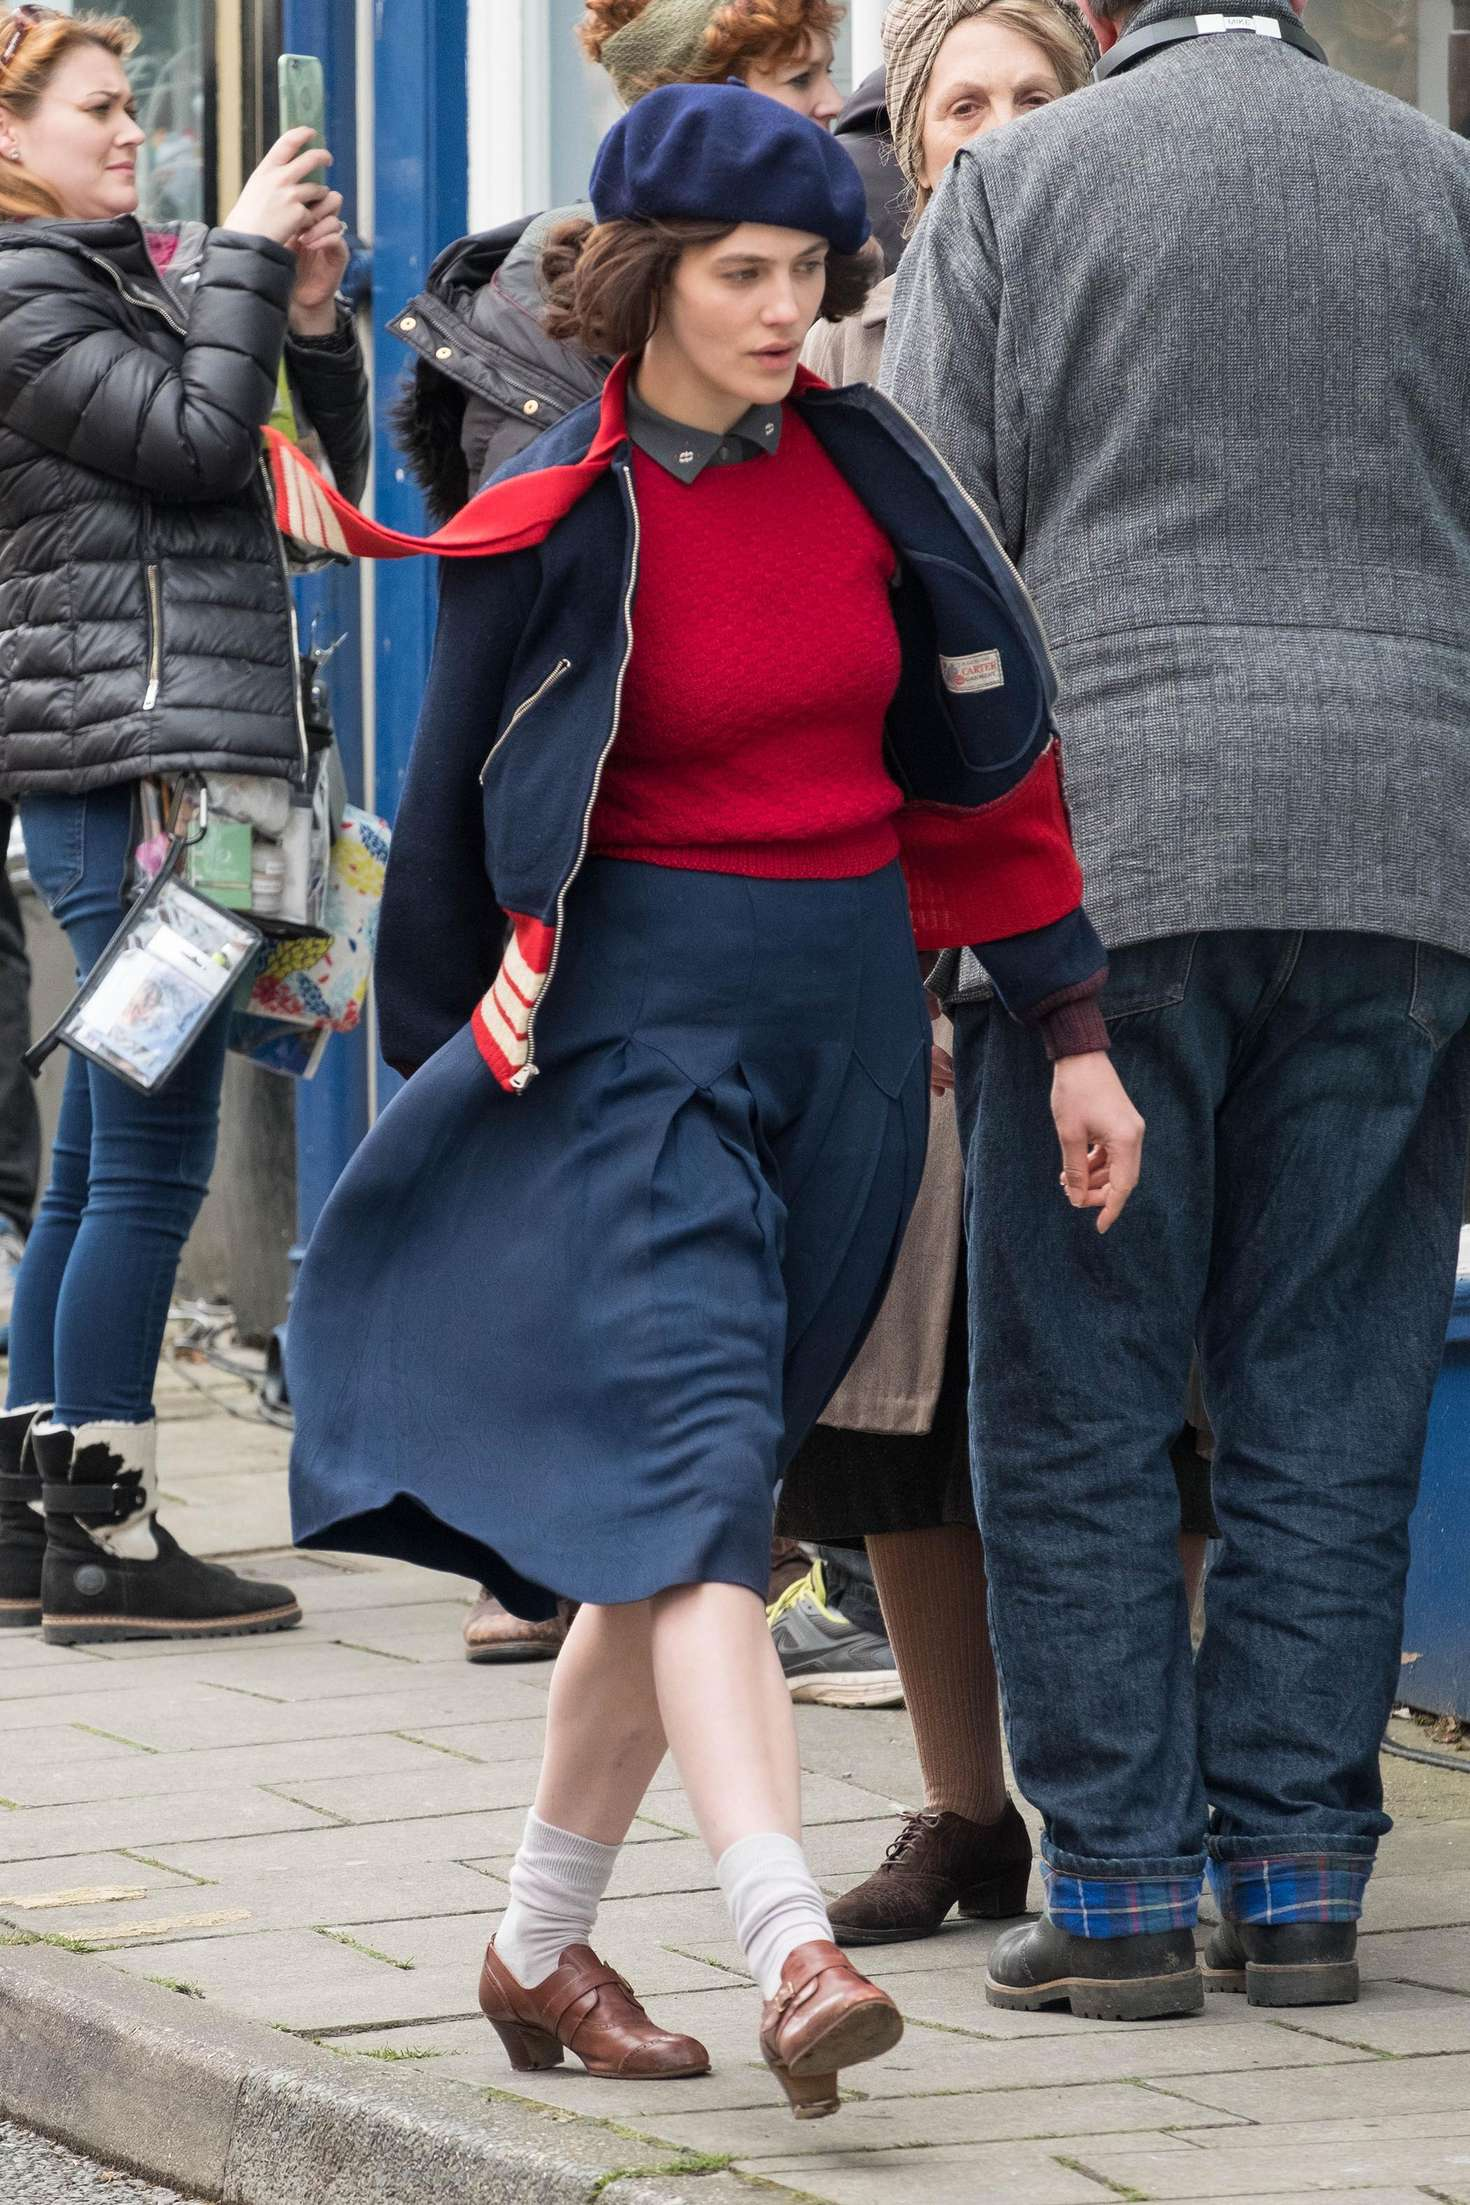 Jessica Brown Findlay on set of 'Gurnsey' in London